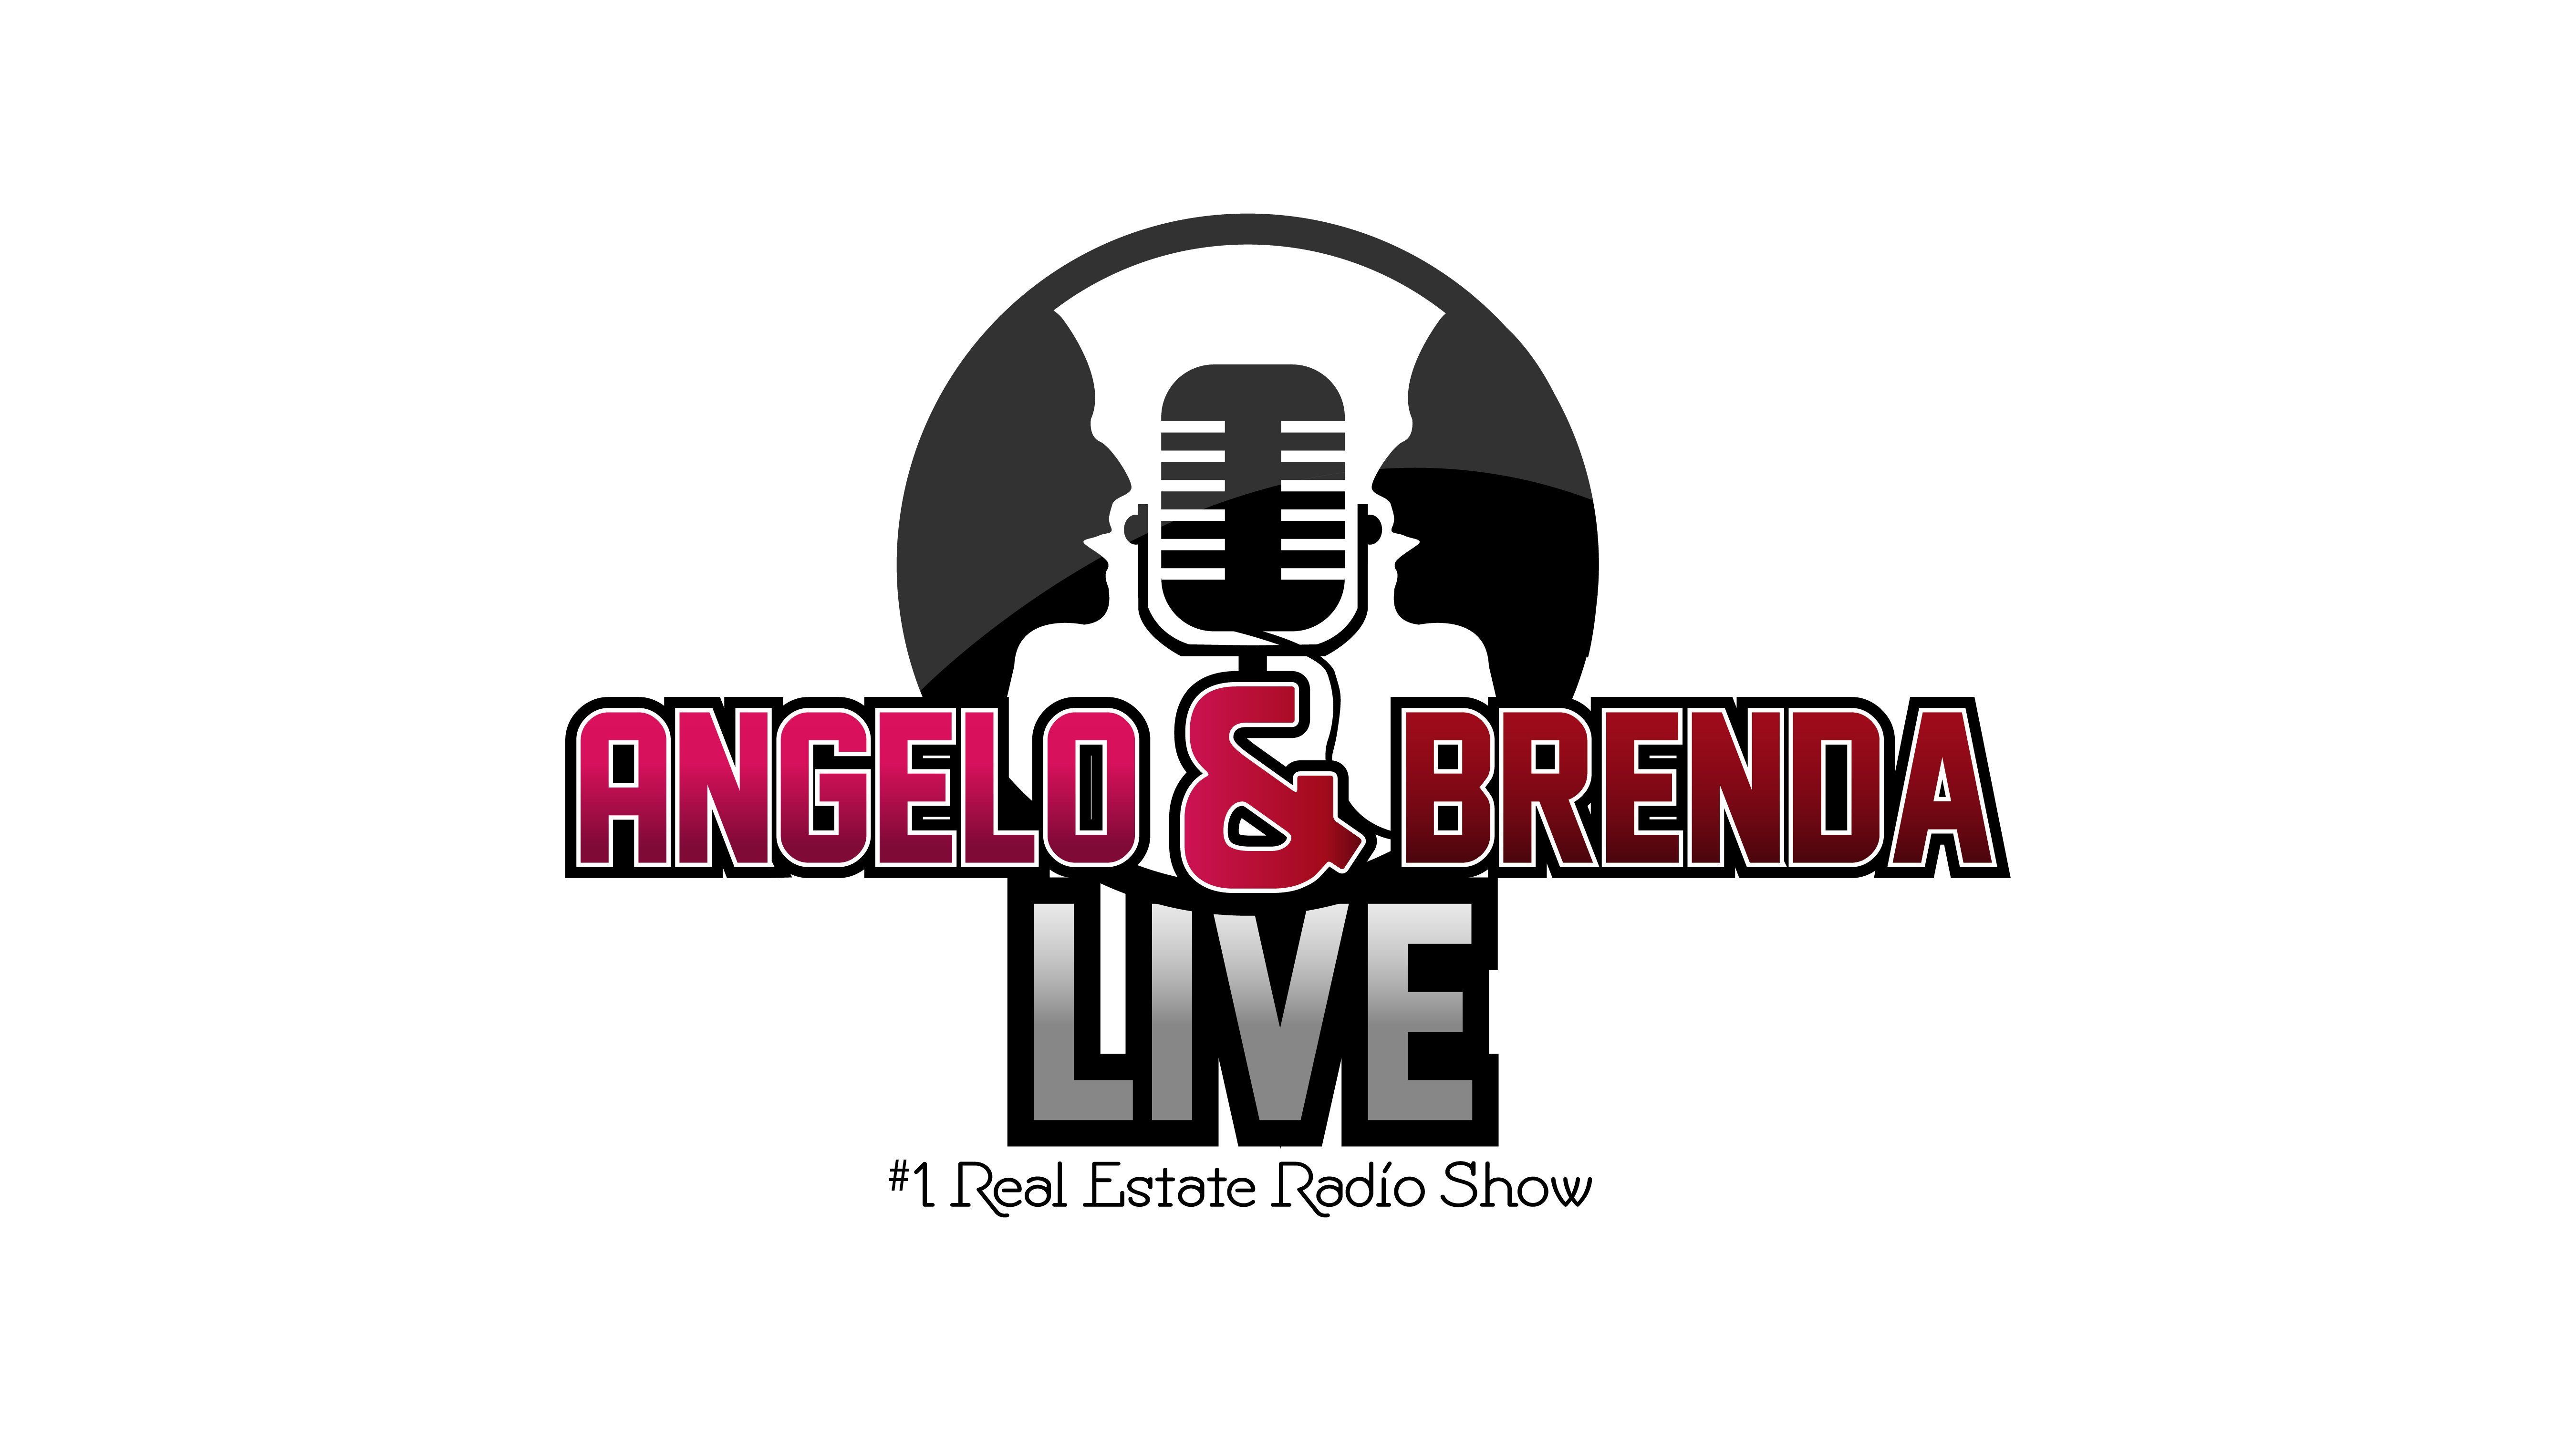 Real Estate and Lifestyle Radio Show 2